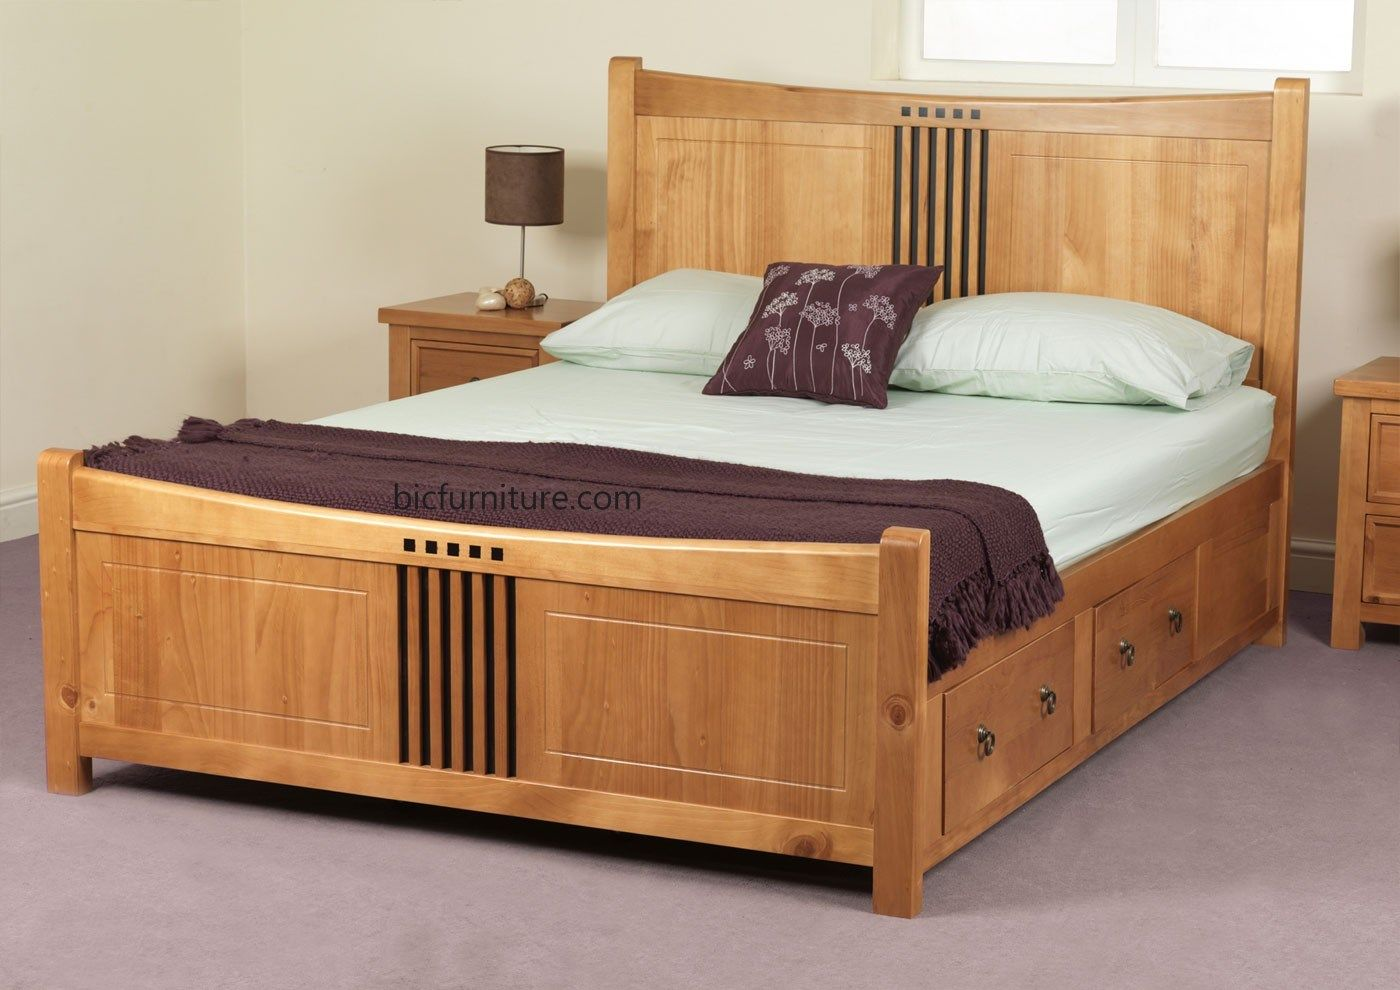 made to order Teakwood double bed with dark king size | Lit | Pinterest